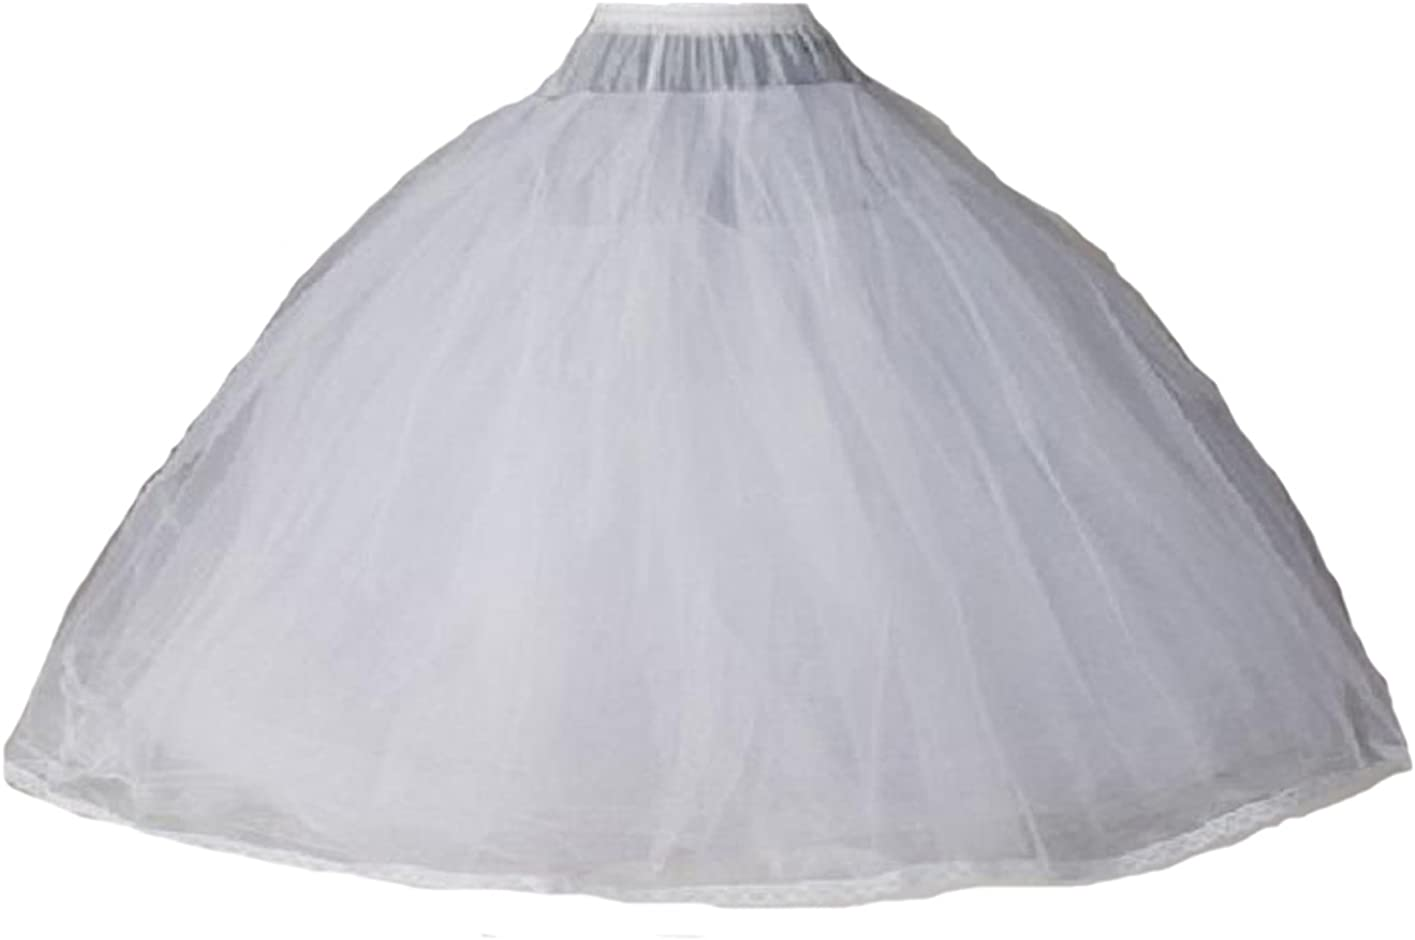 Dearta Women's 8 Layers Tulle Ball Gowns Dresses Petticoats with No Rings